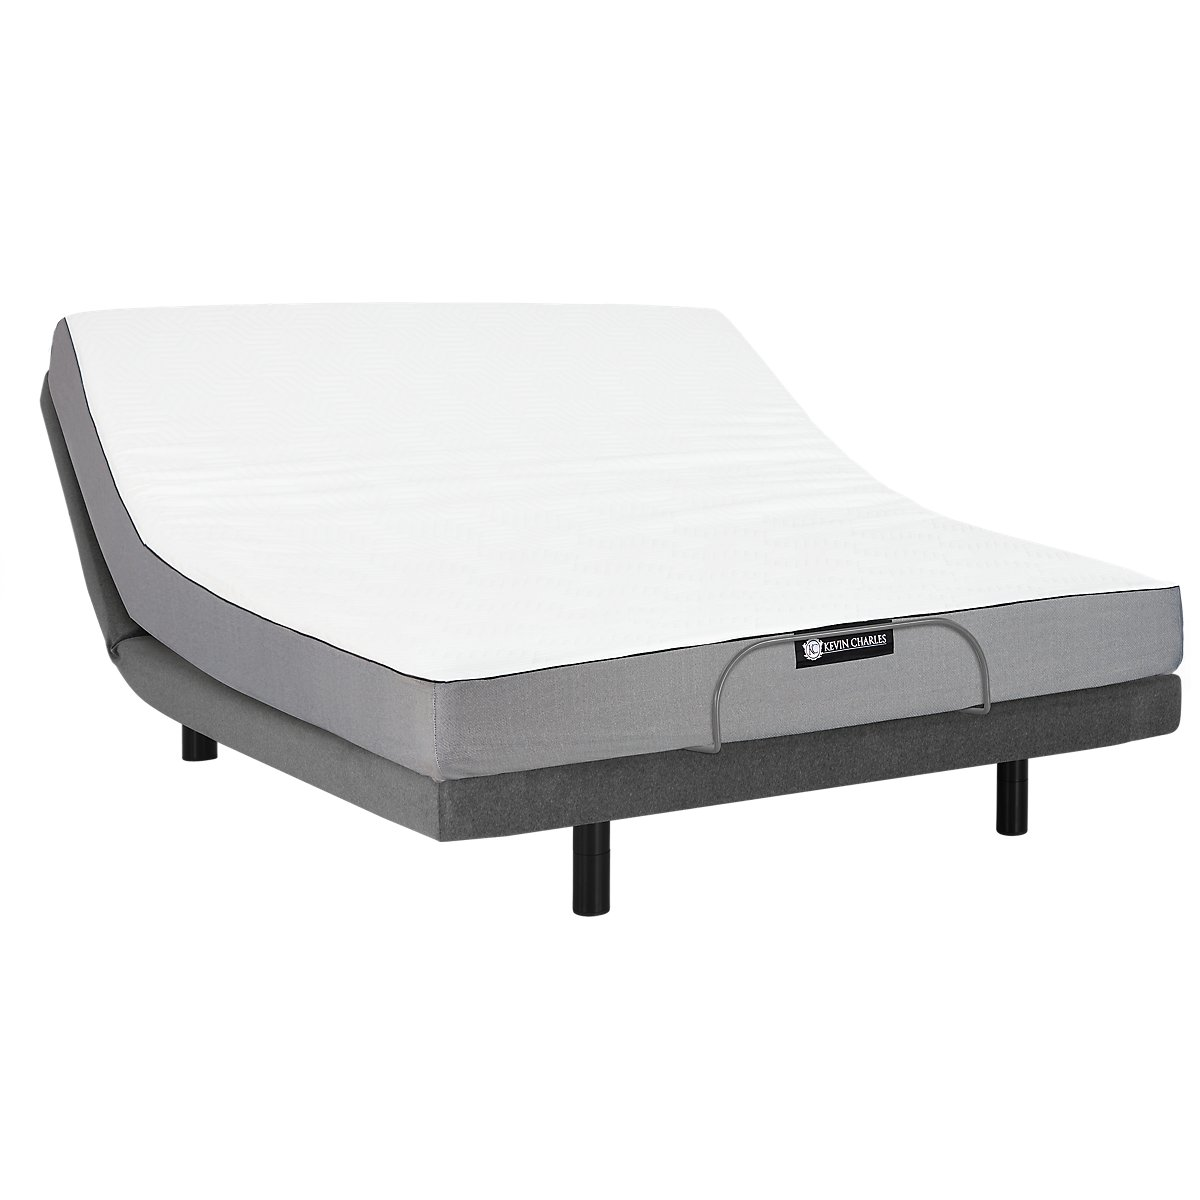 City furniture slumber firm memory foam elite adjustable mattress set Memory foam mattress set